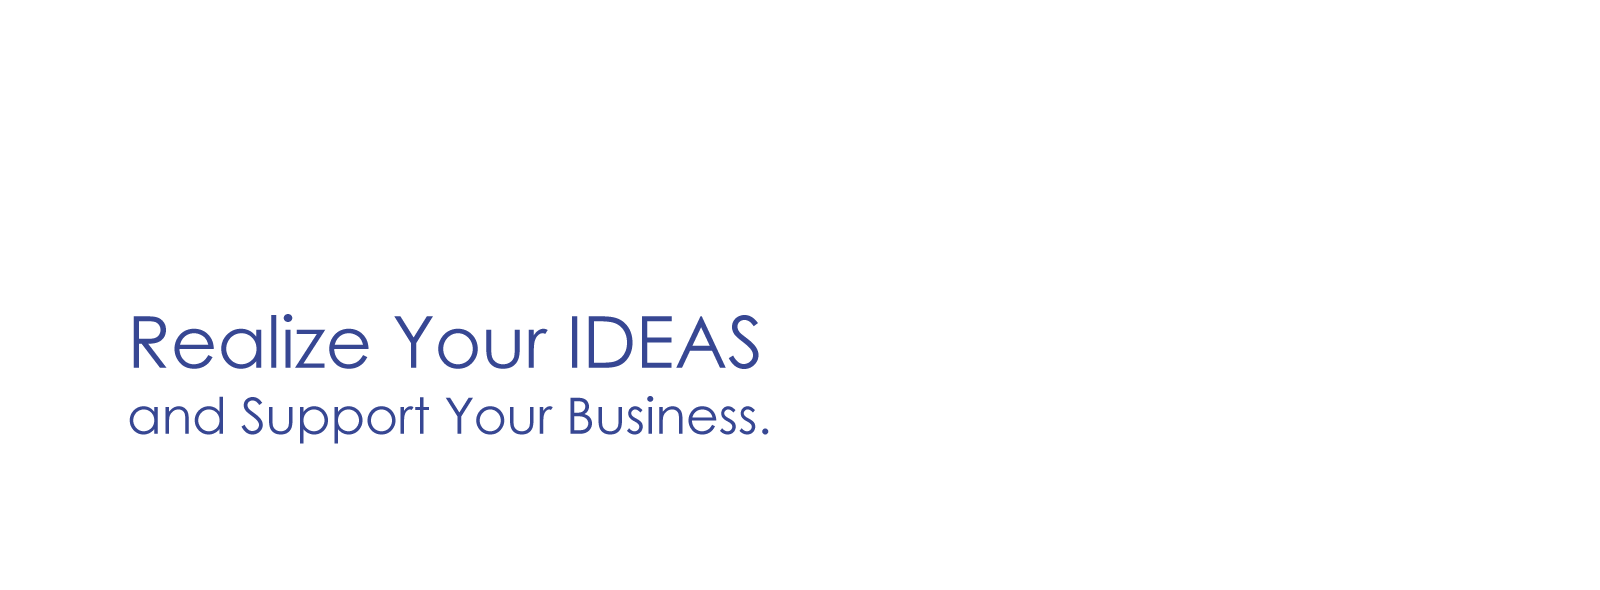 Realize Your IDEAS and Support Your Business.